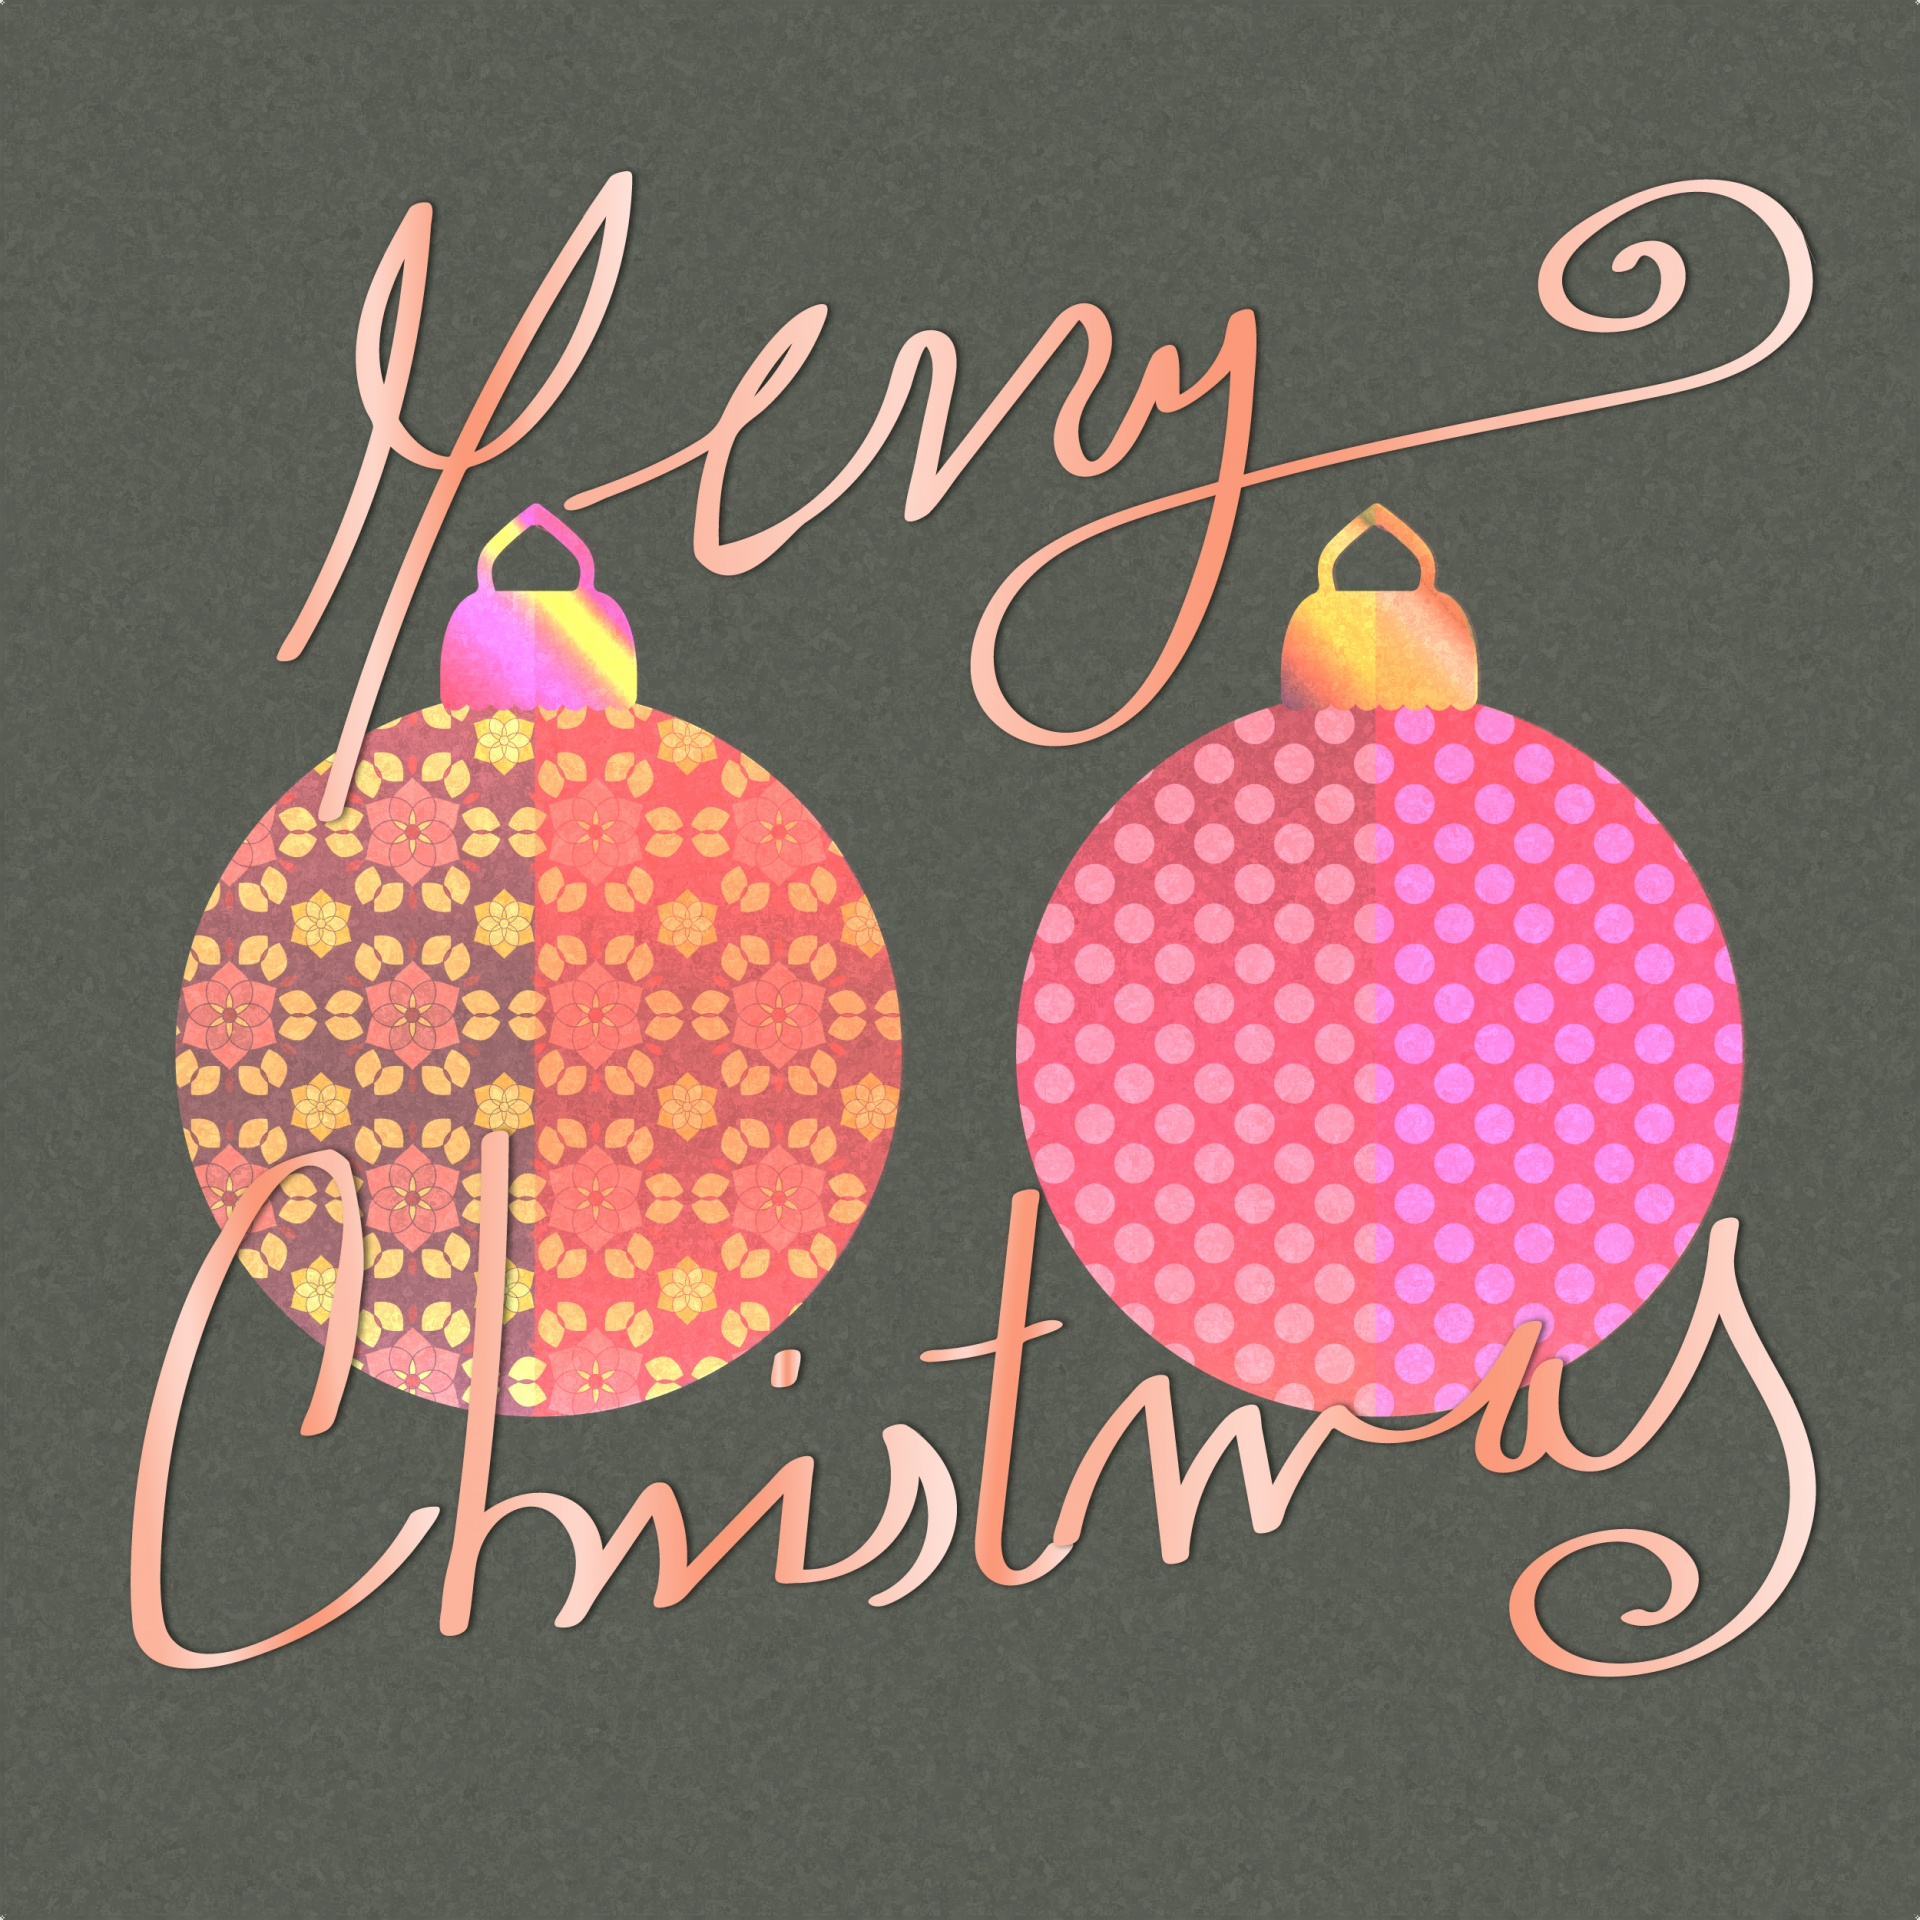 Merry Christmas Card Background Free Stock Photo Public